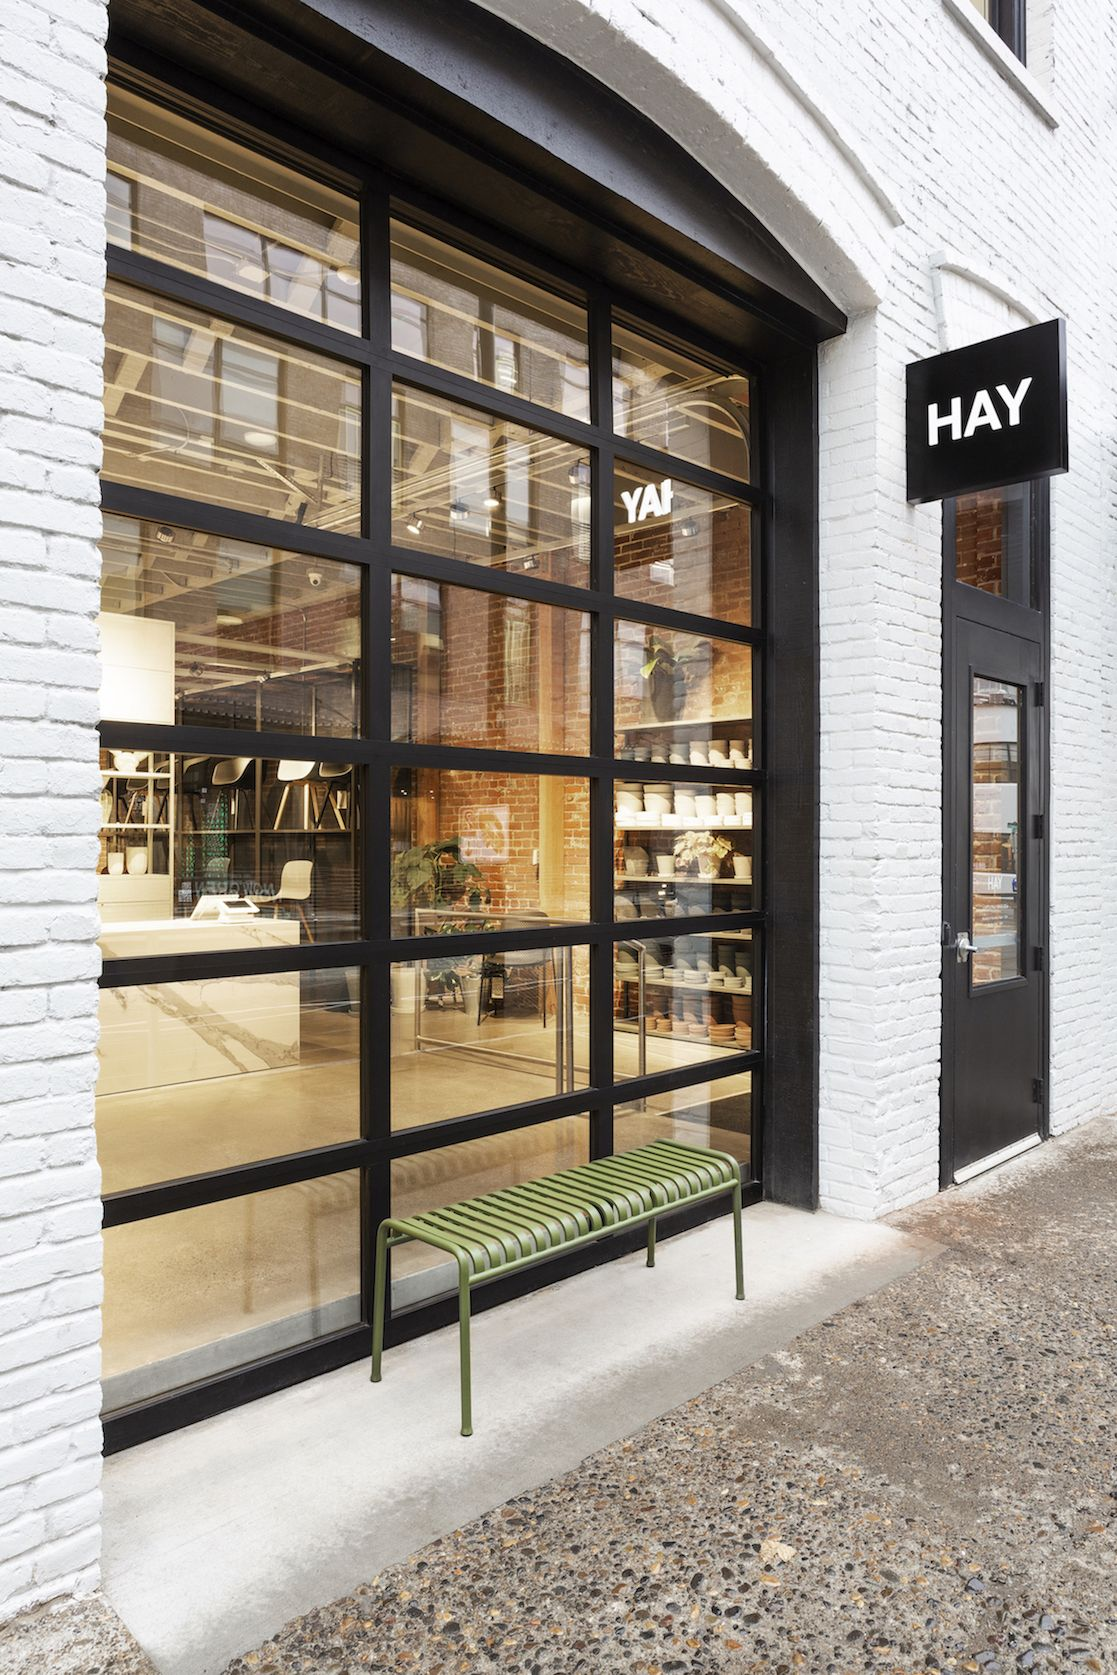 Portland Welcomes Hay S First Brick And Mortar Store In The Us Brick Store Brick Architecture Modern Store